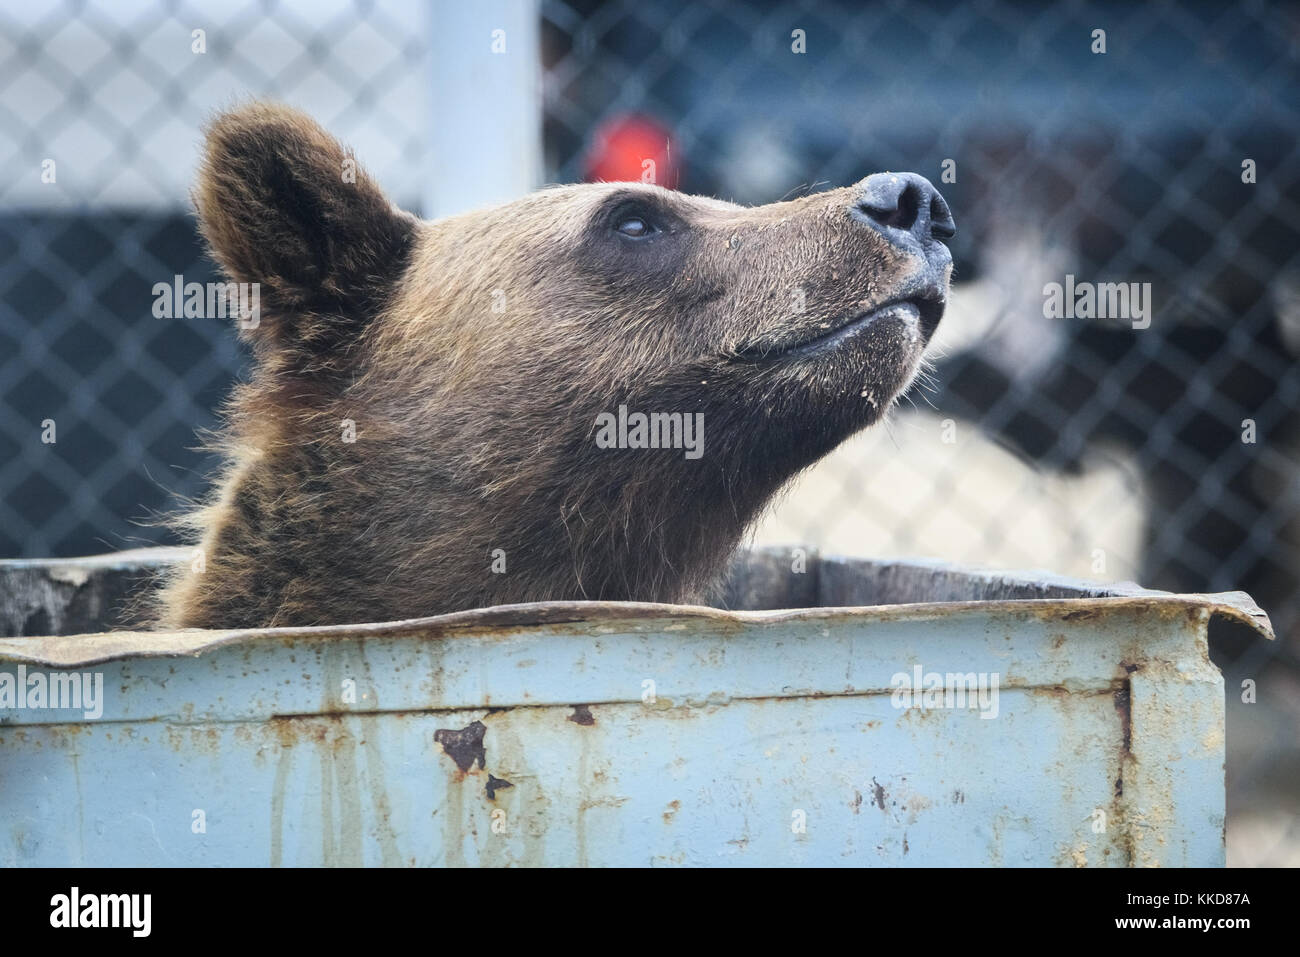 Jack Huff S Bear Eating Out Of Trash Can